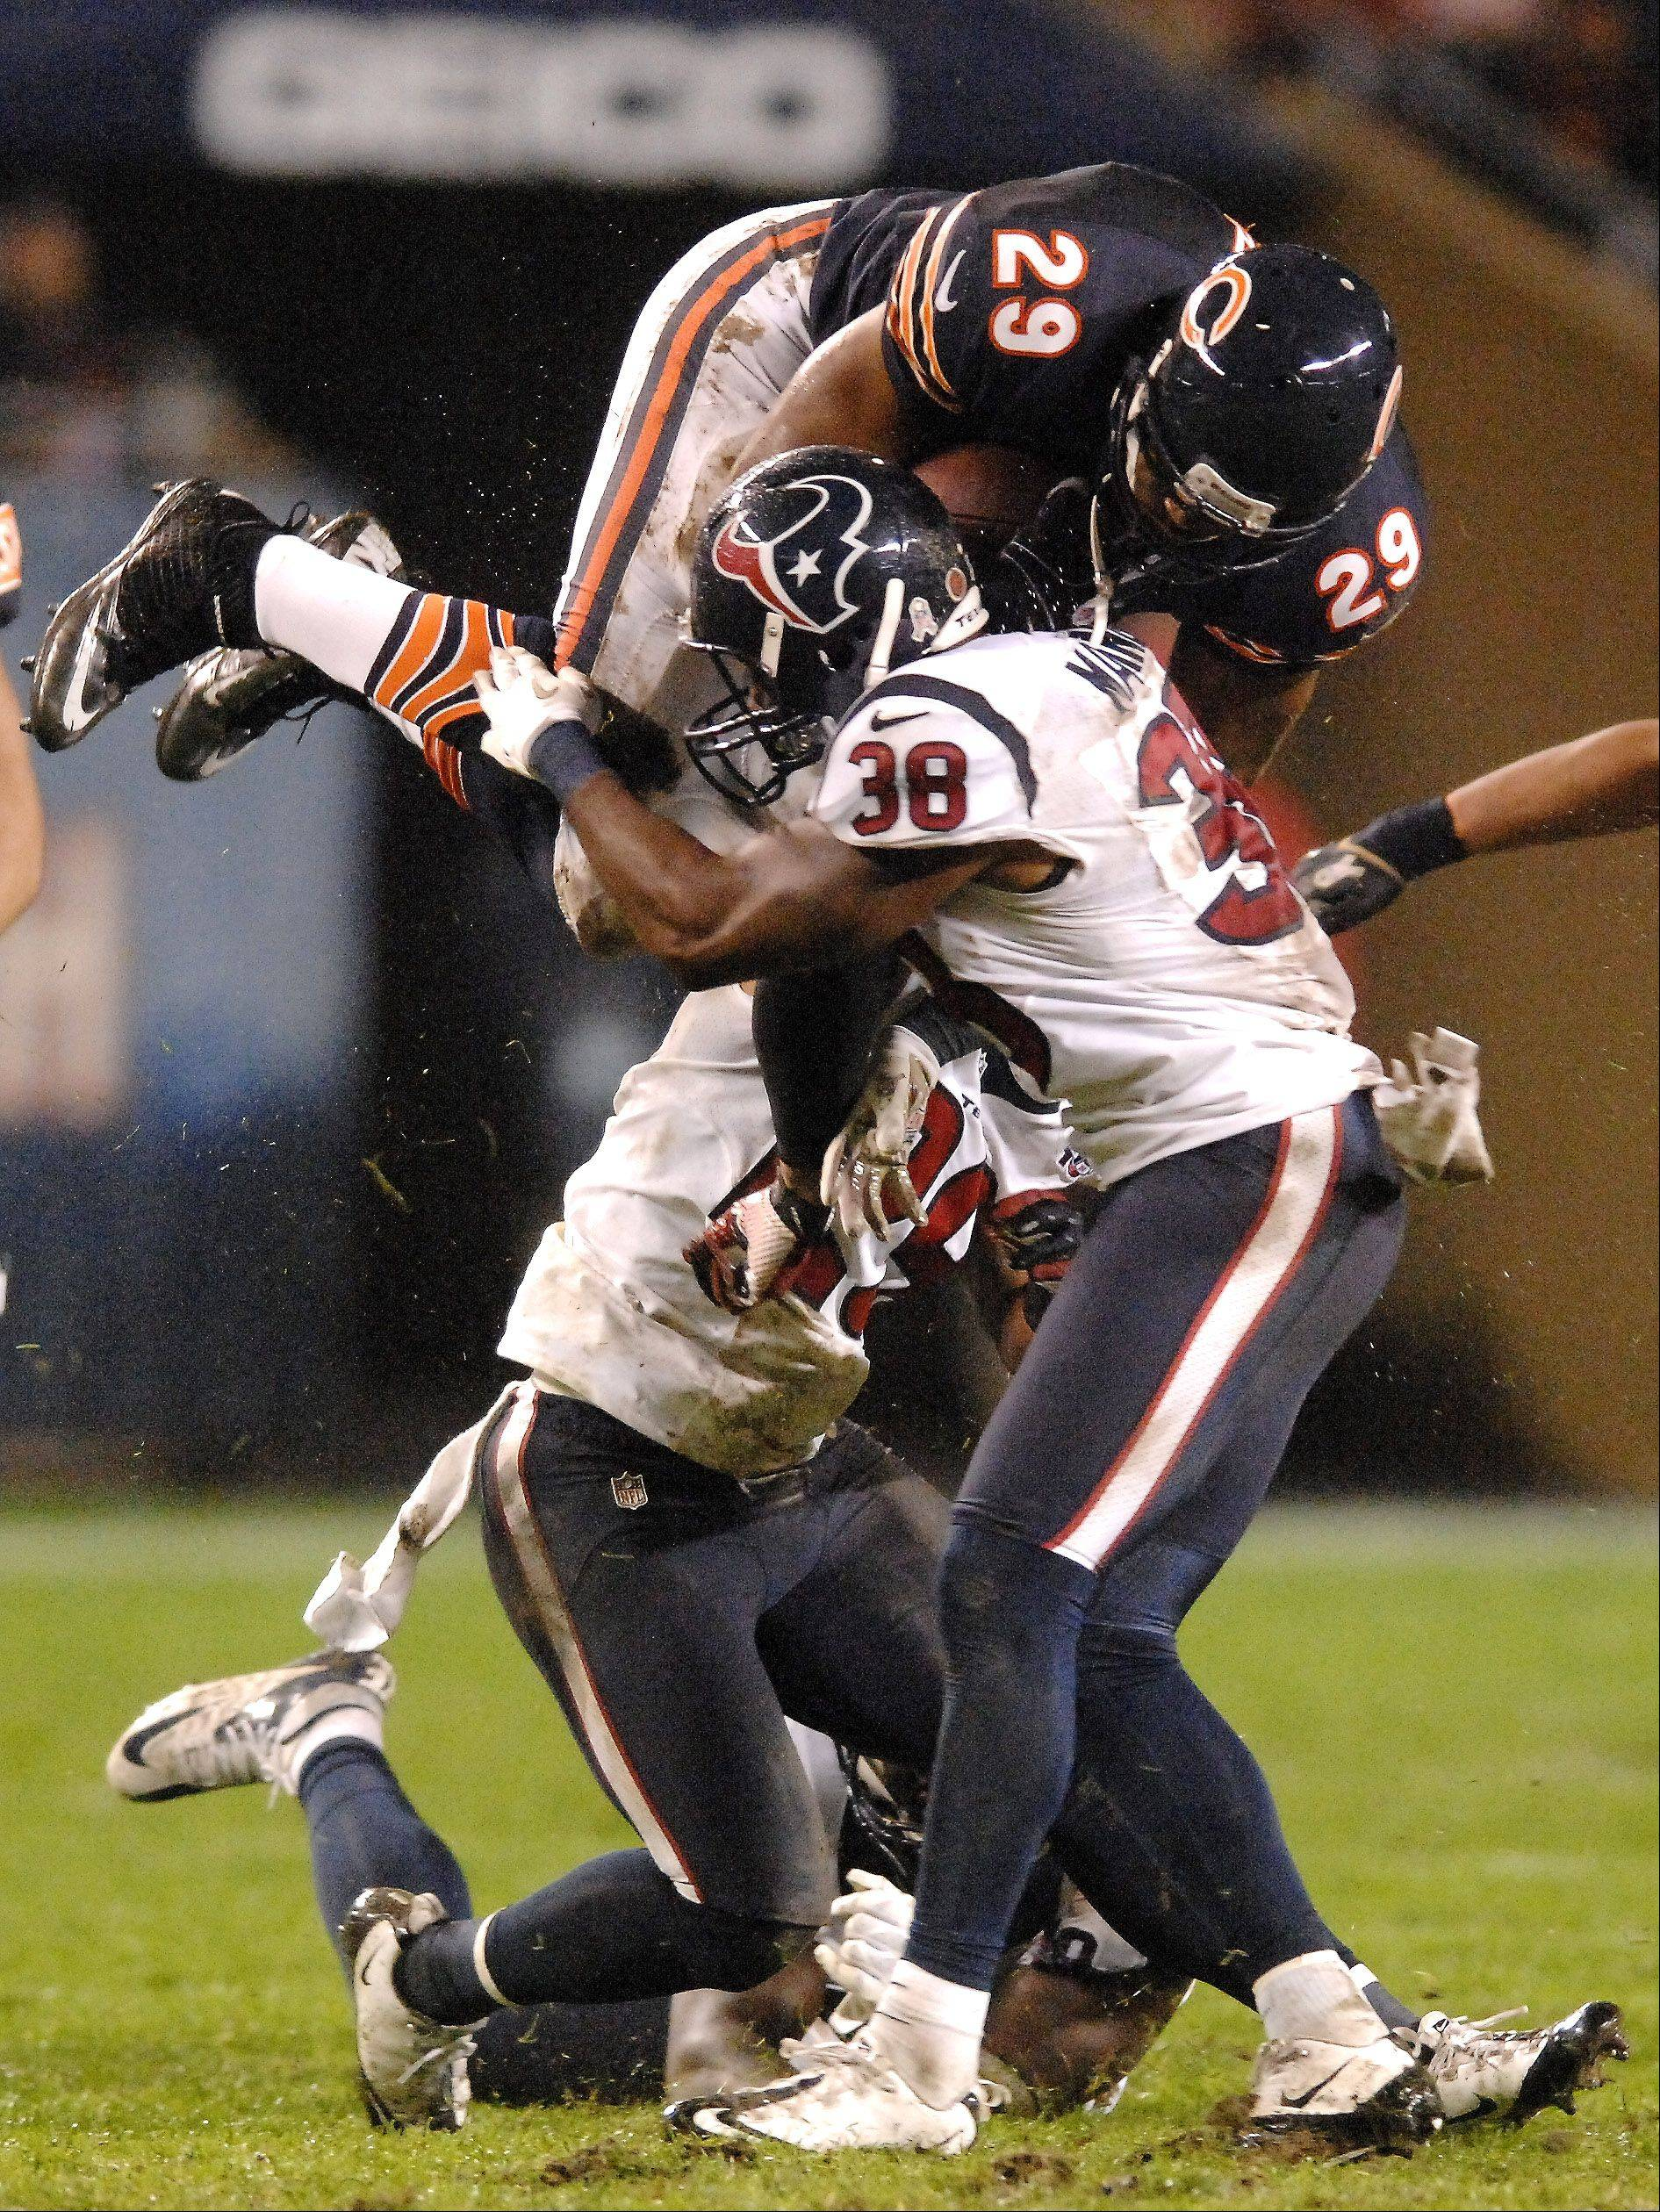 Chicago Bears running back Michael Bush (29) is upended on a 19-yard gain in the fourth quarter against Houston.